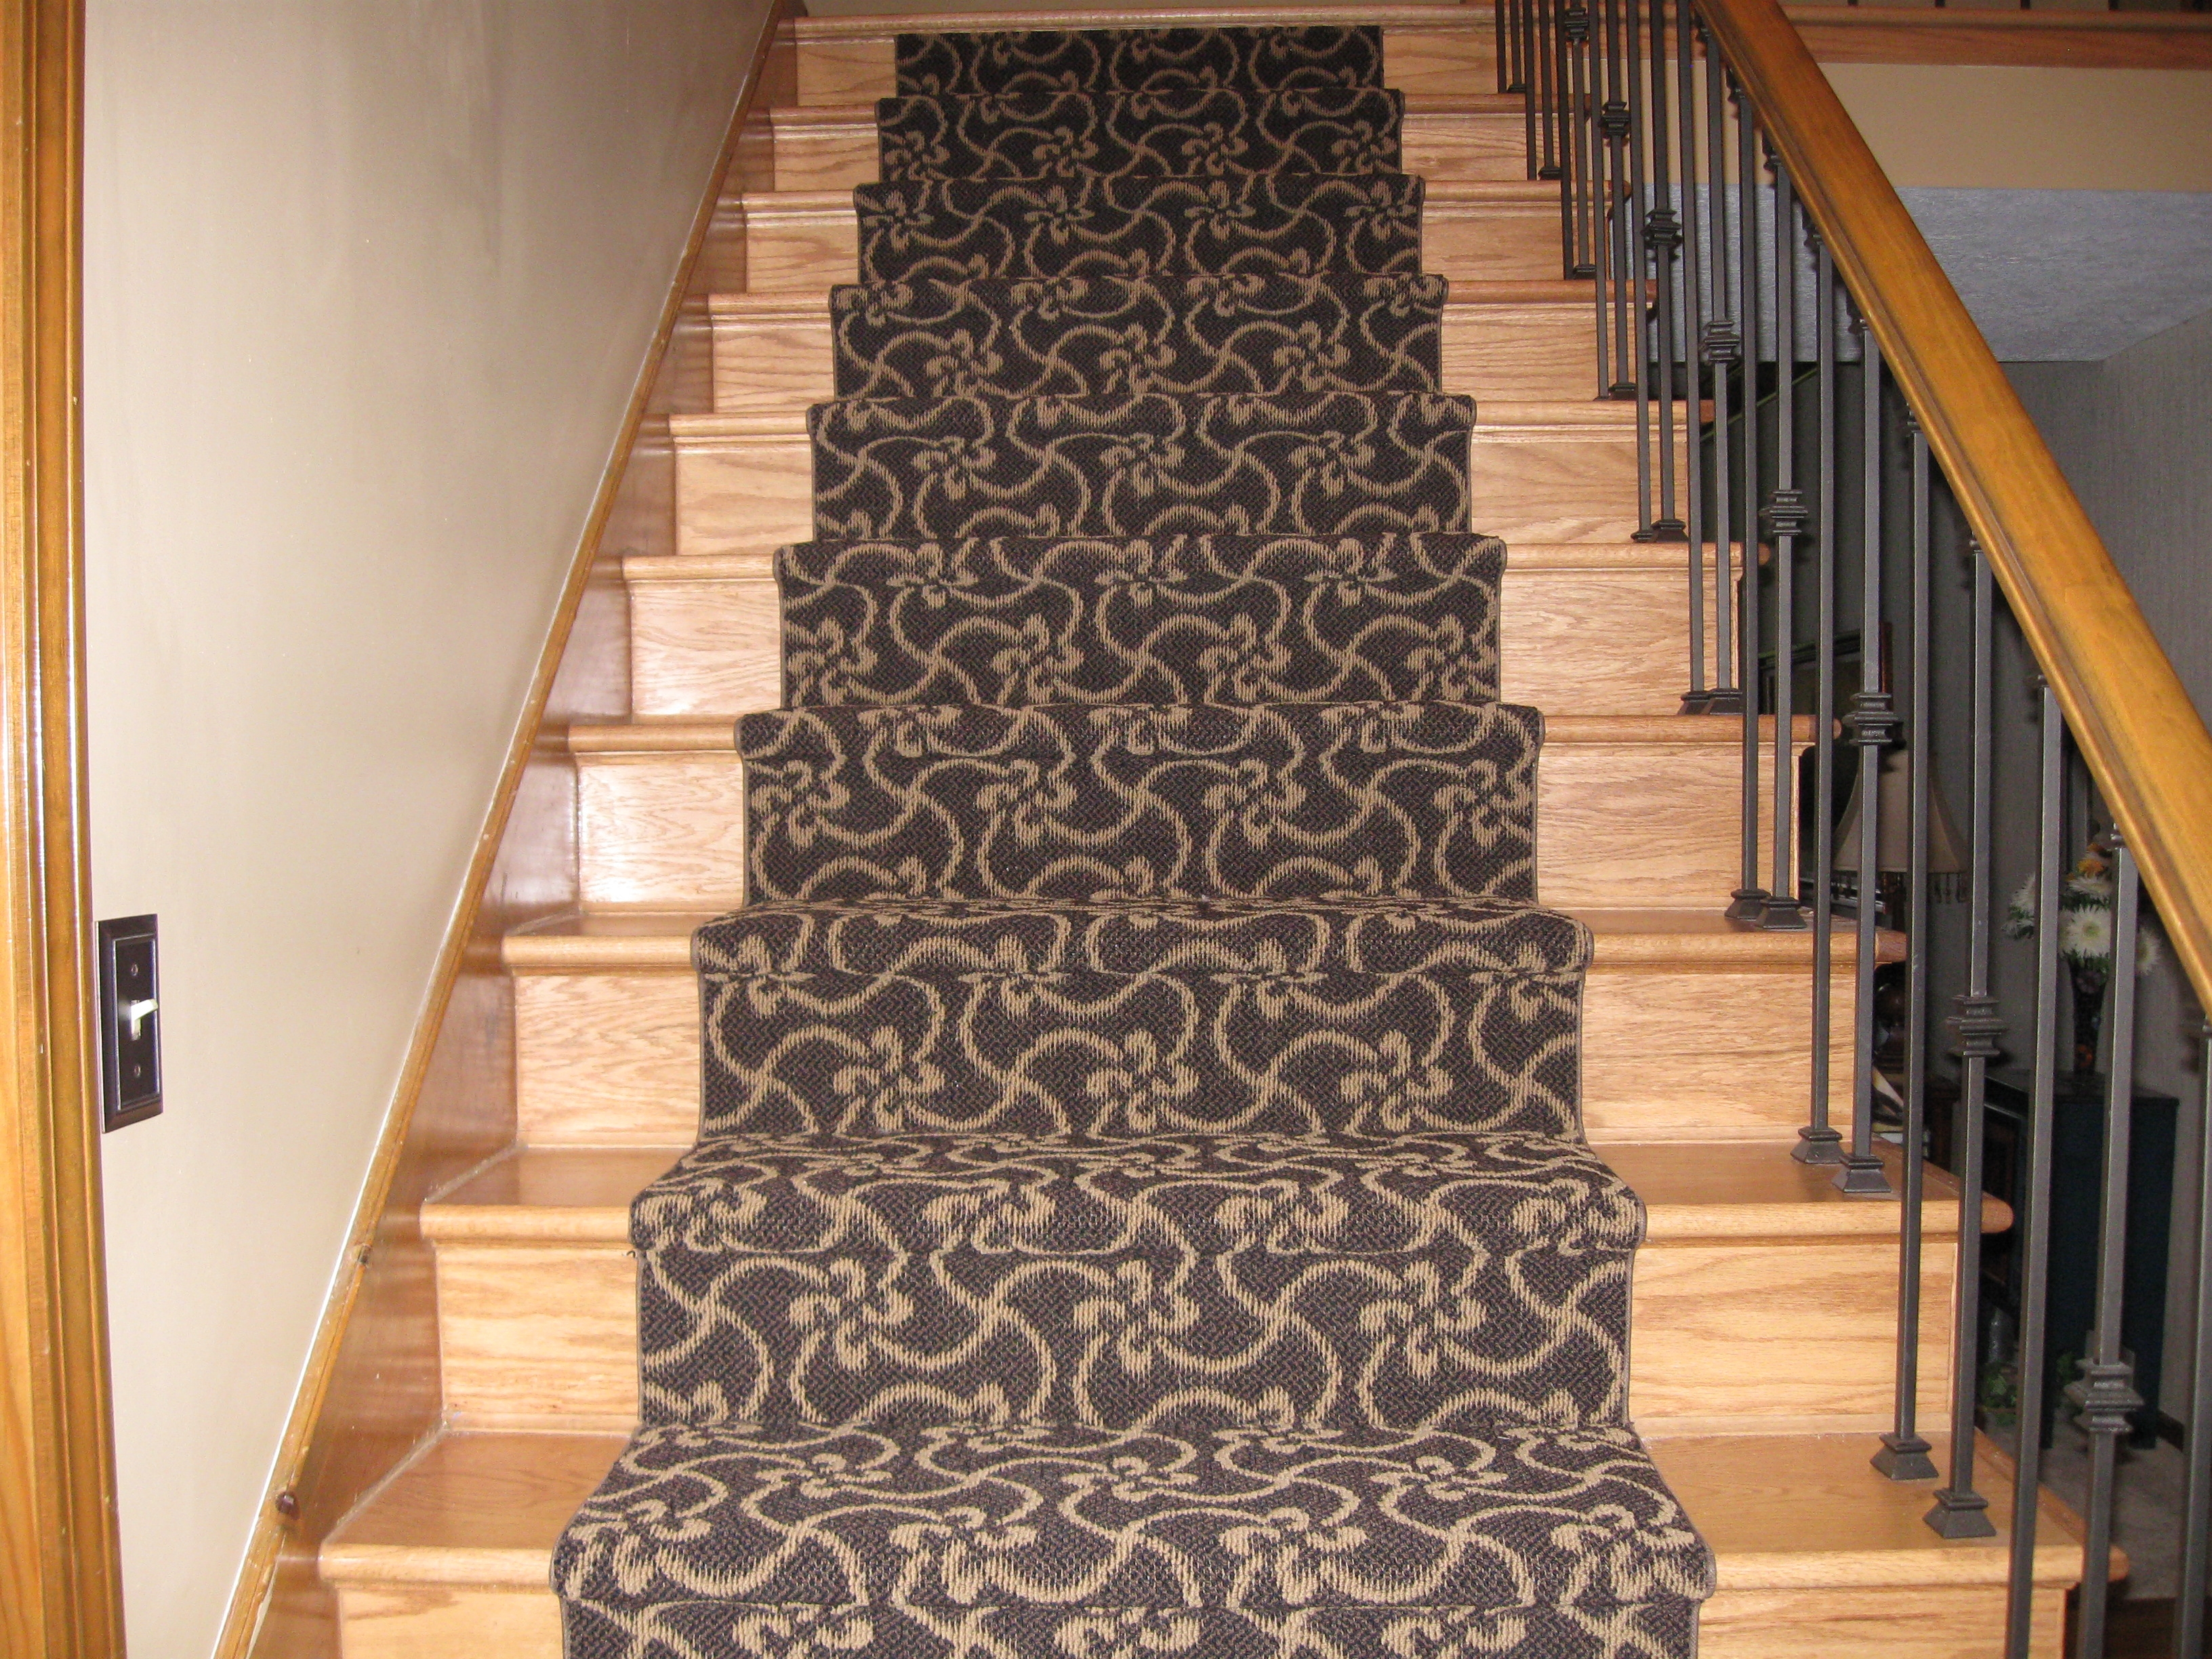 Stairway Rugs Roselawnlutheran In Stair Treads And Matching Rugs (Image 15 of 15)